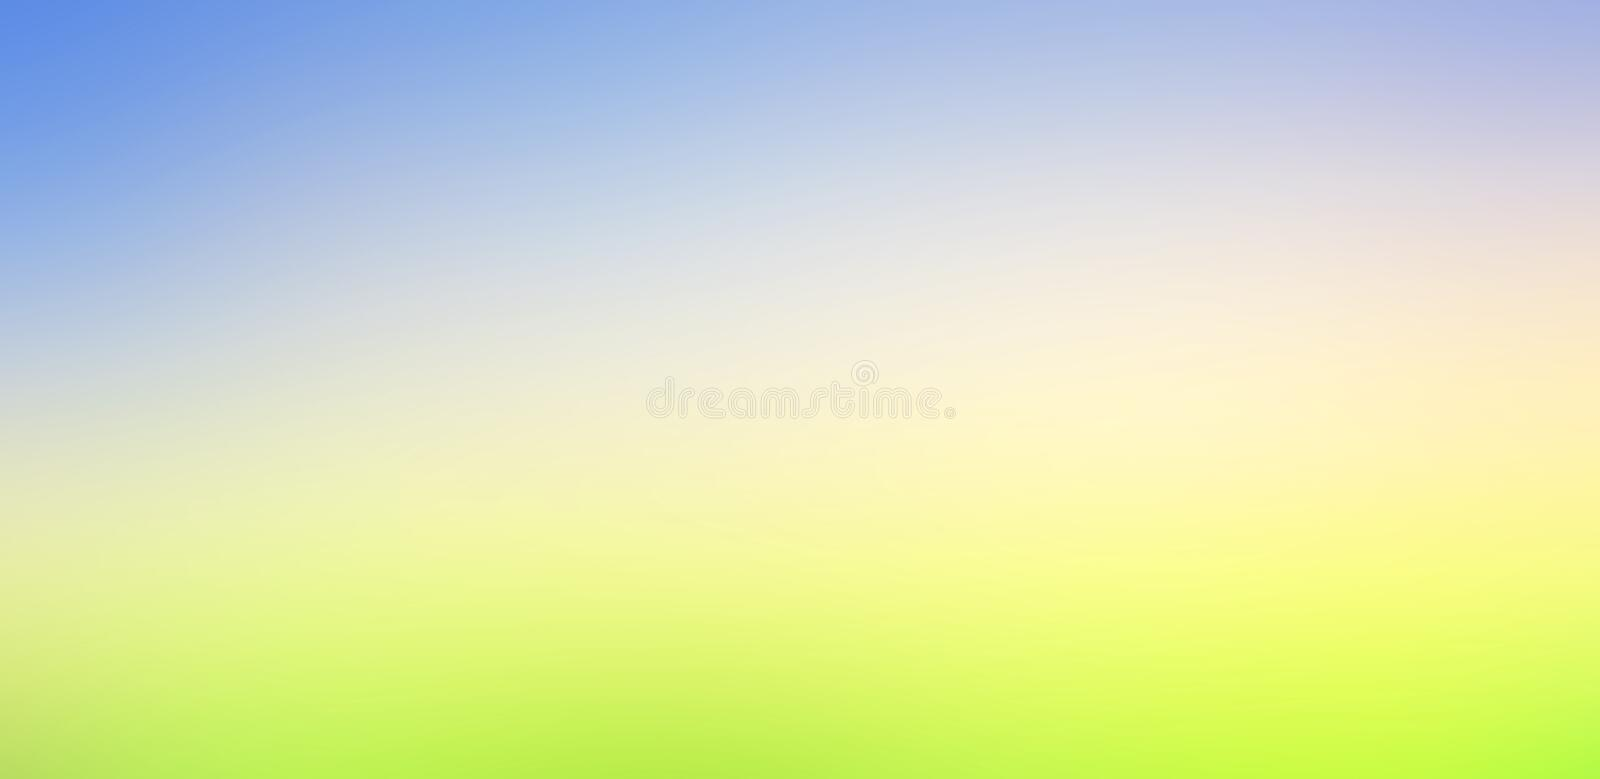 World environment day concept: Sun light and abstract blurred autumn sunrise background royalty free stock image